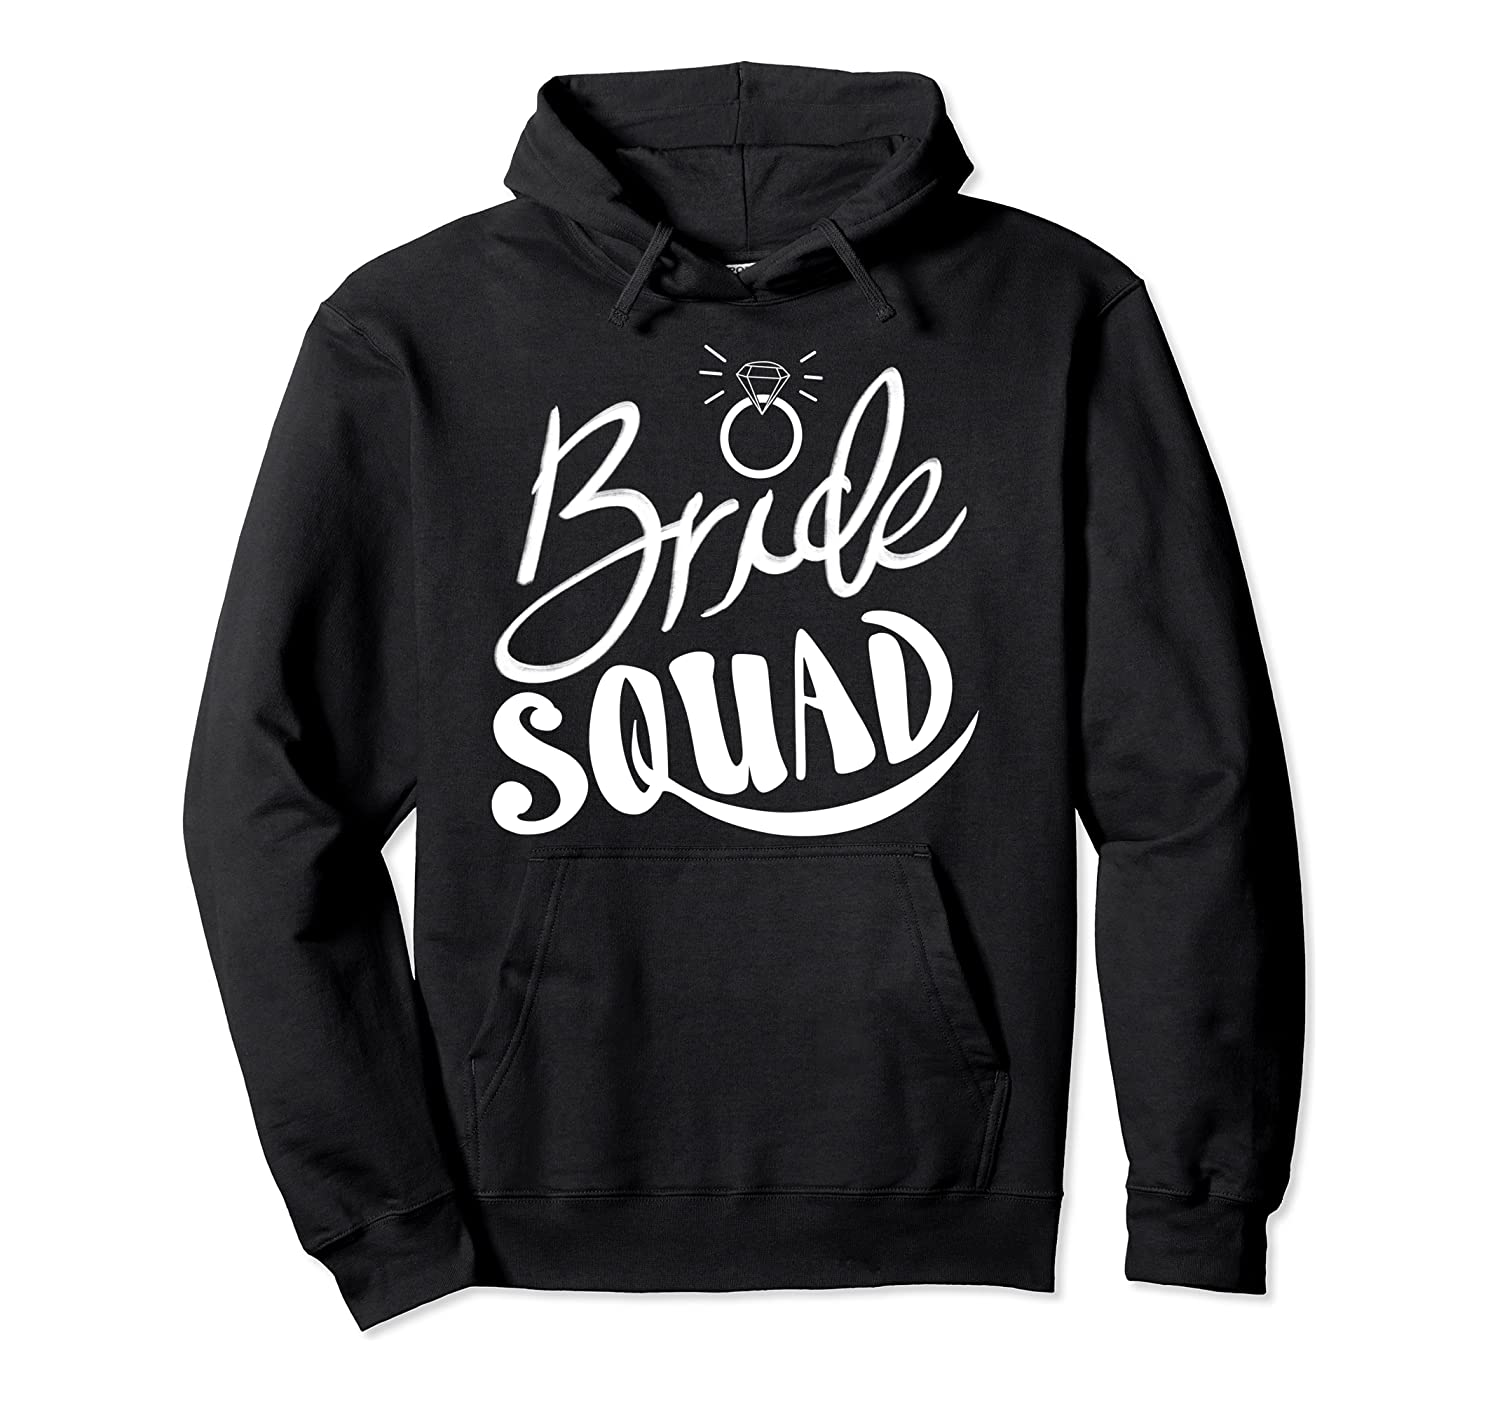 Cool Bride Squad | Funny Engaged Women Group Marriage Gift Pullover Hoodie